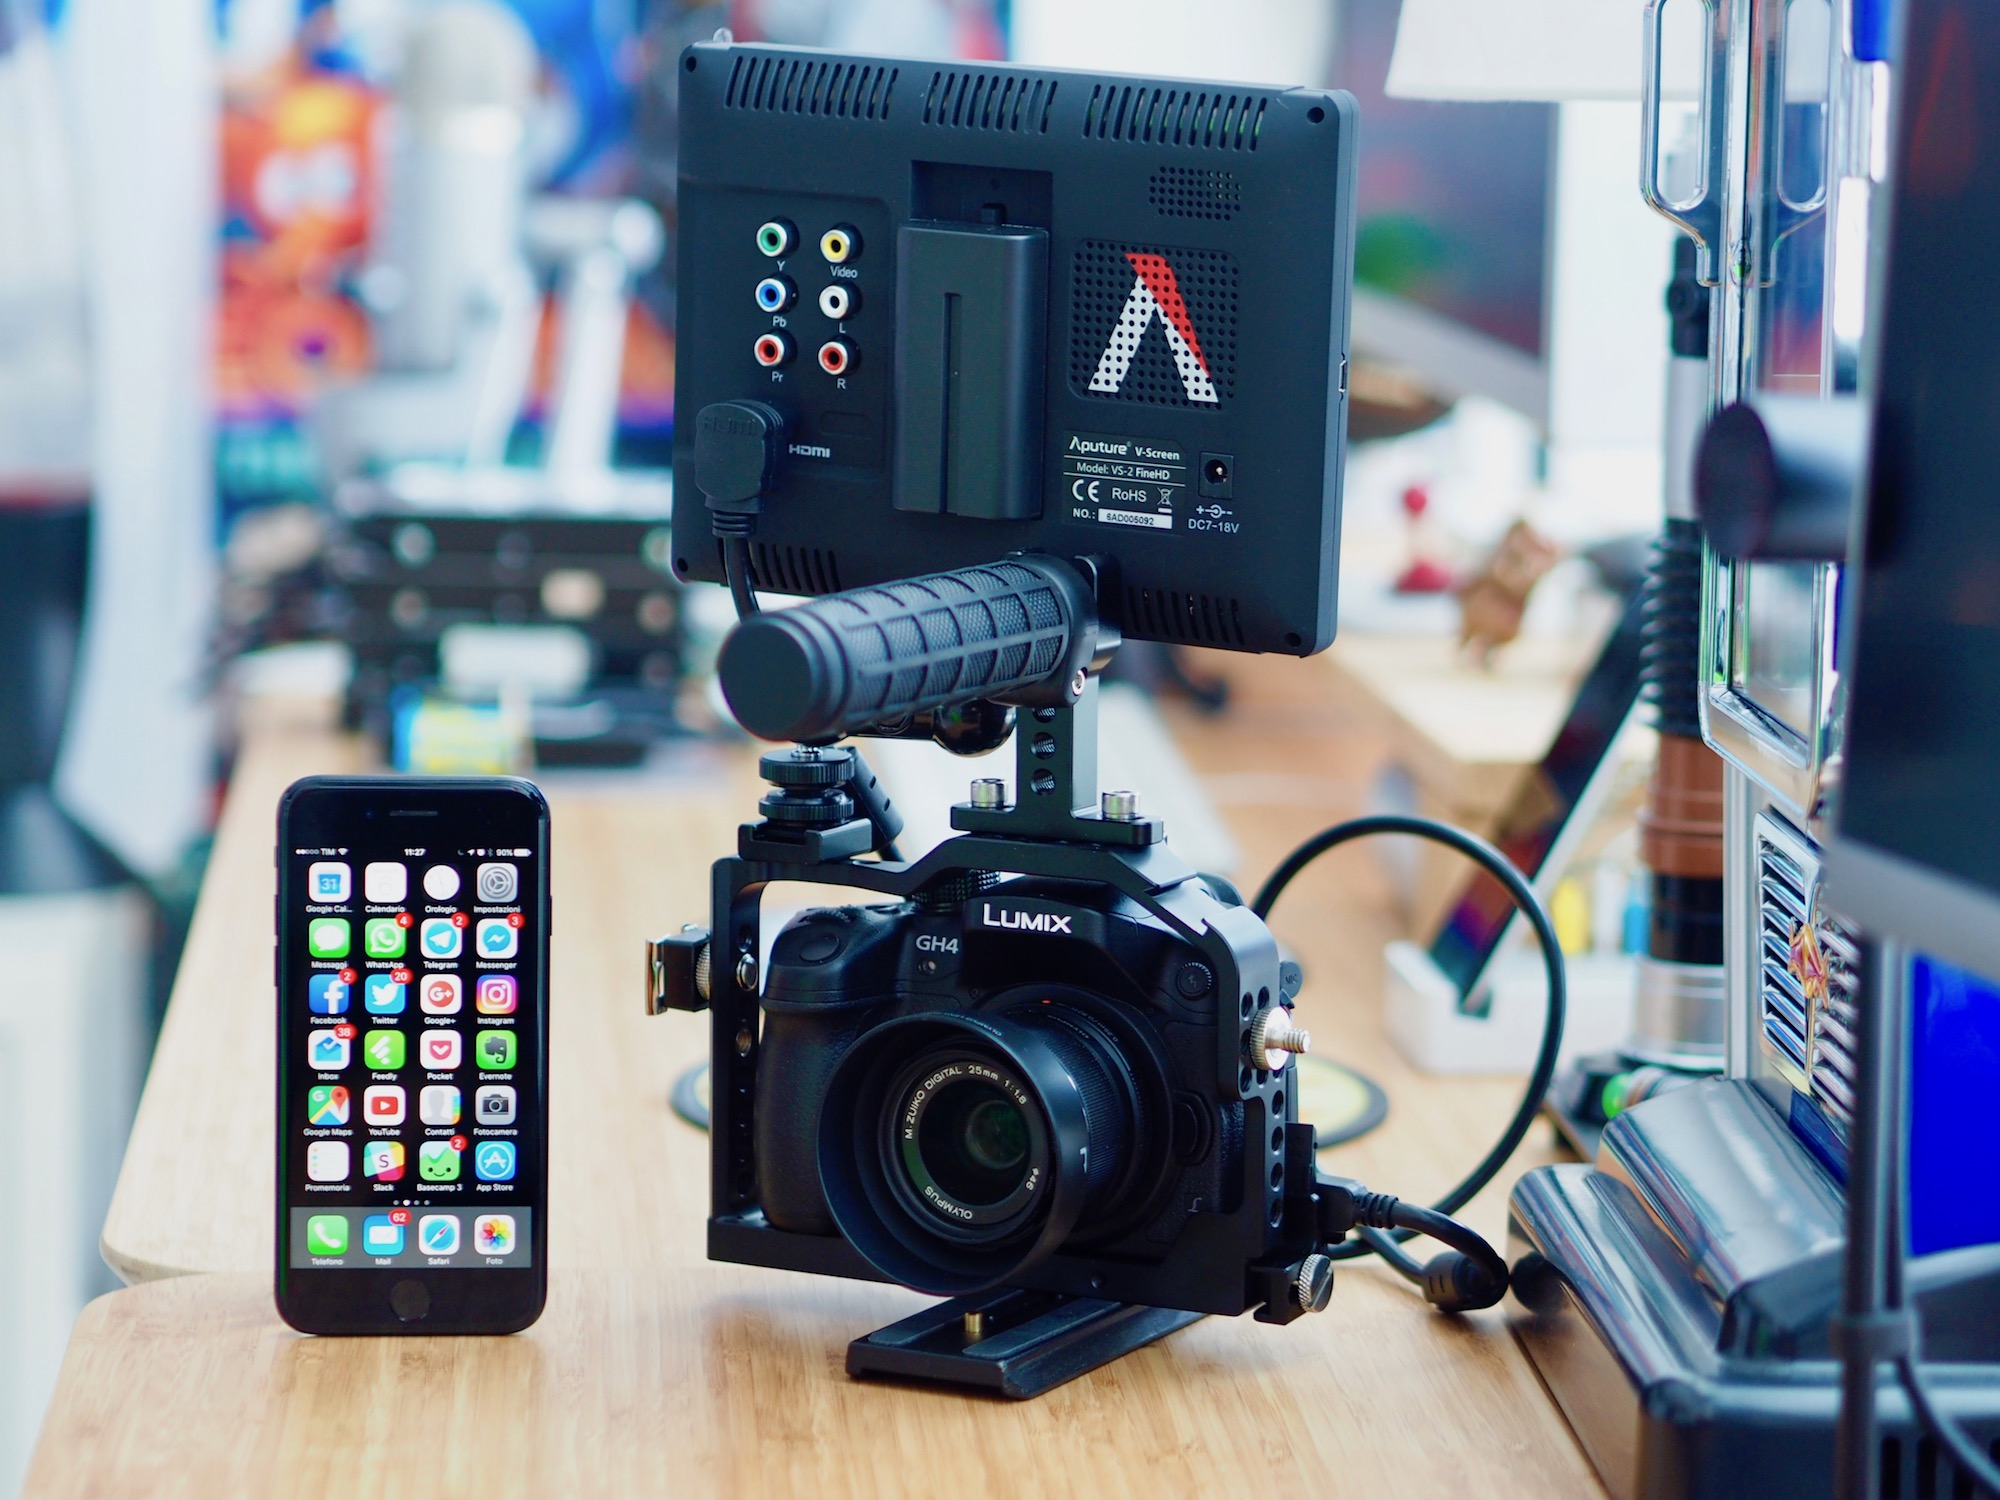 Youtube per babbani: dallo smartphone alla Panasonic GH4